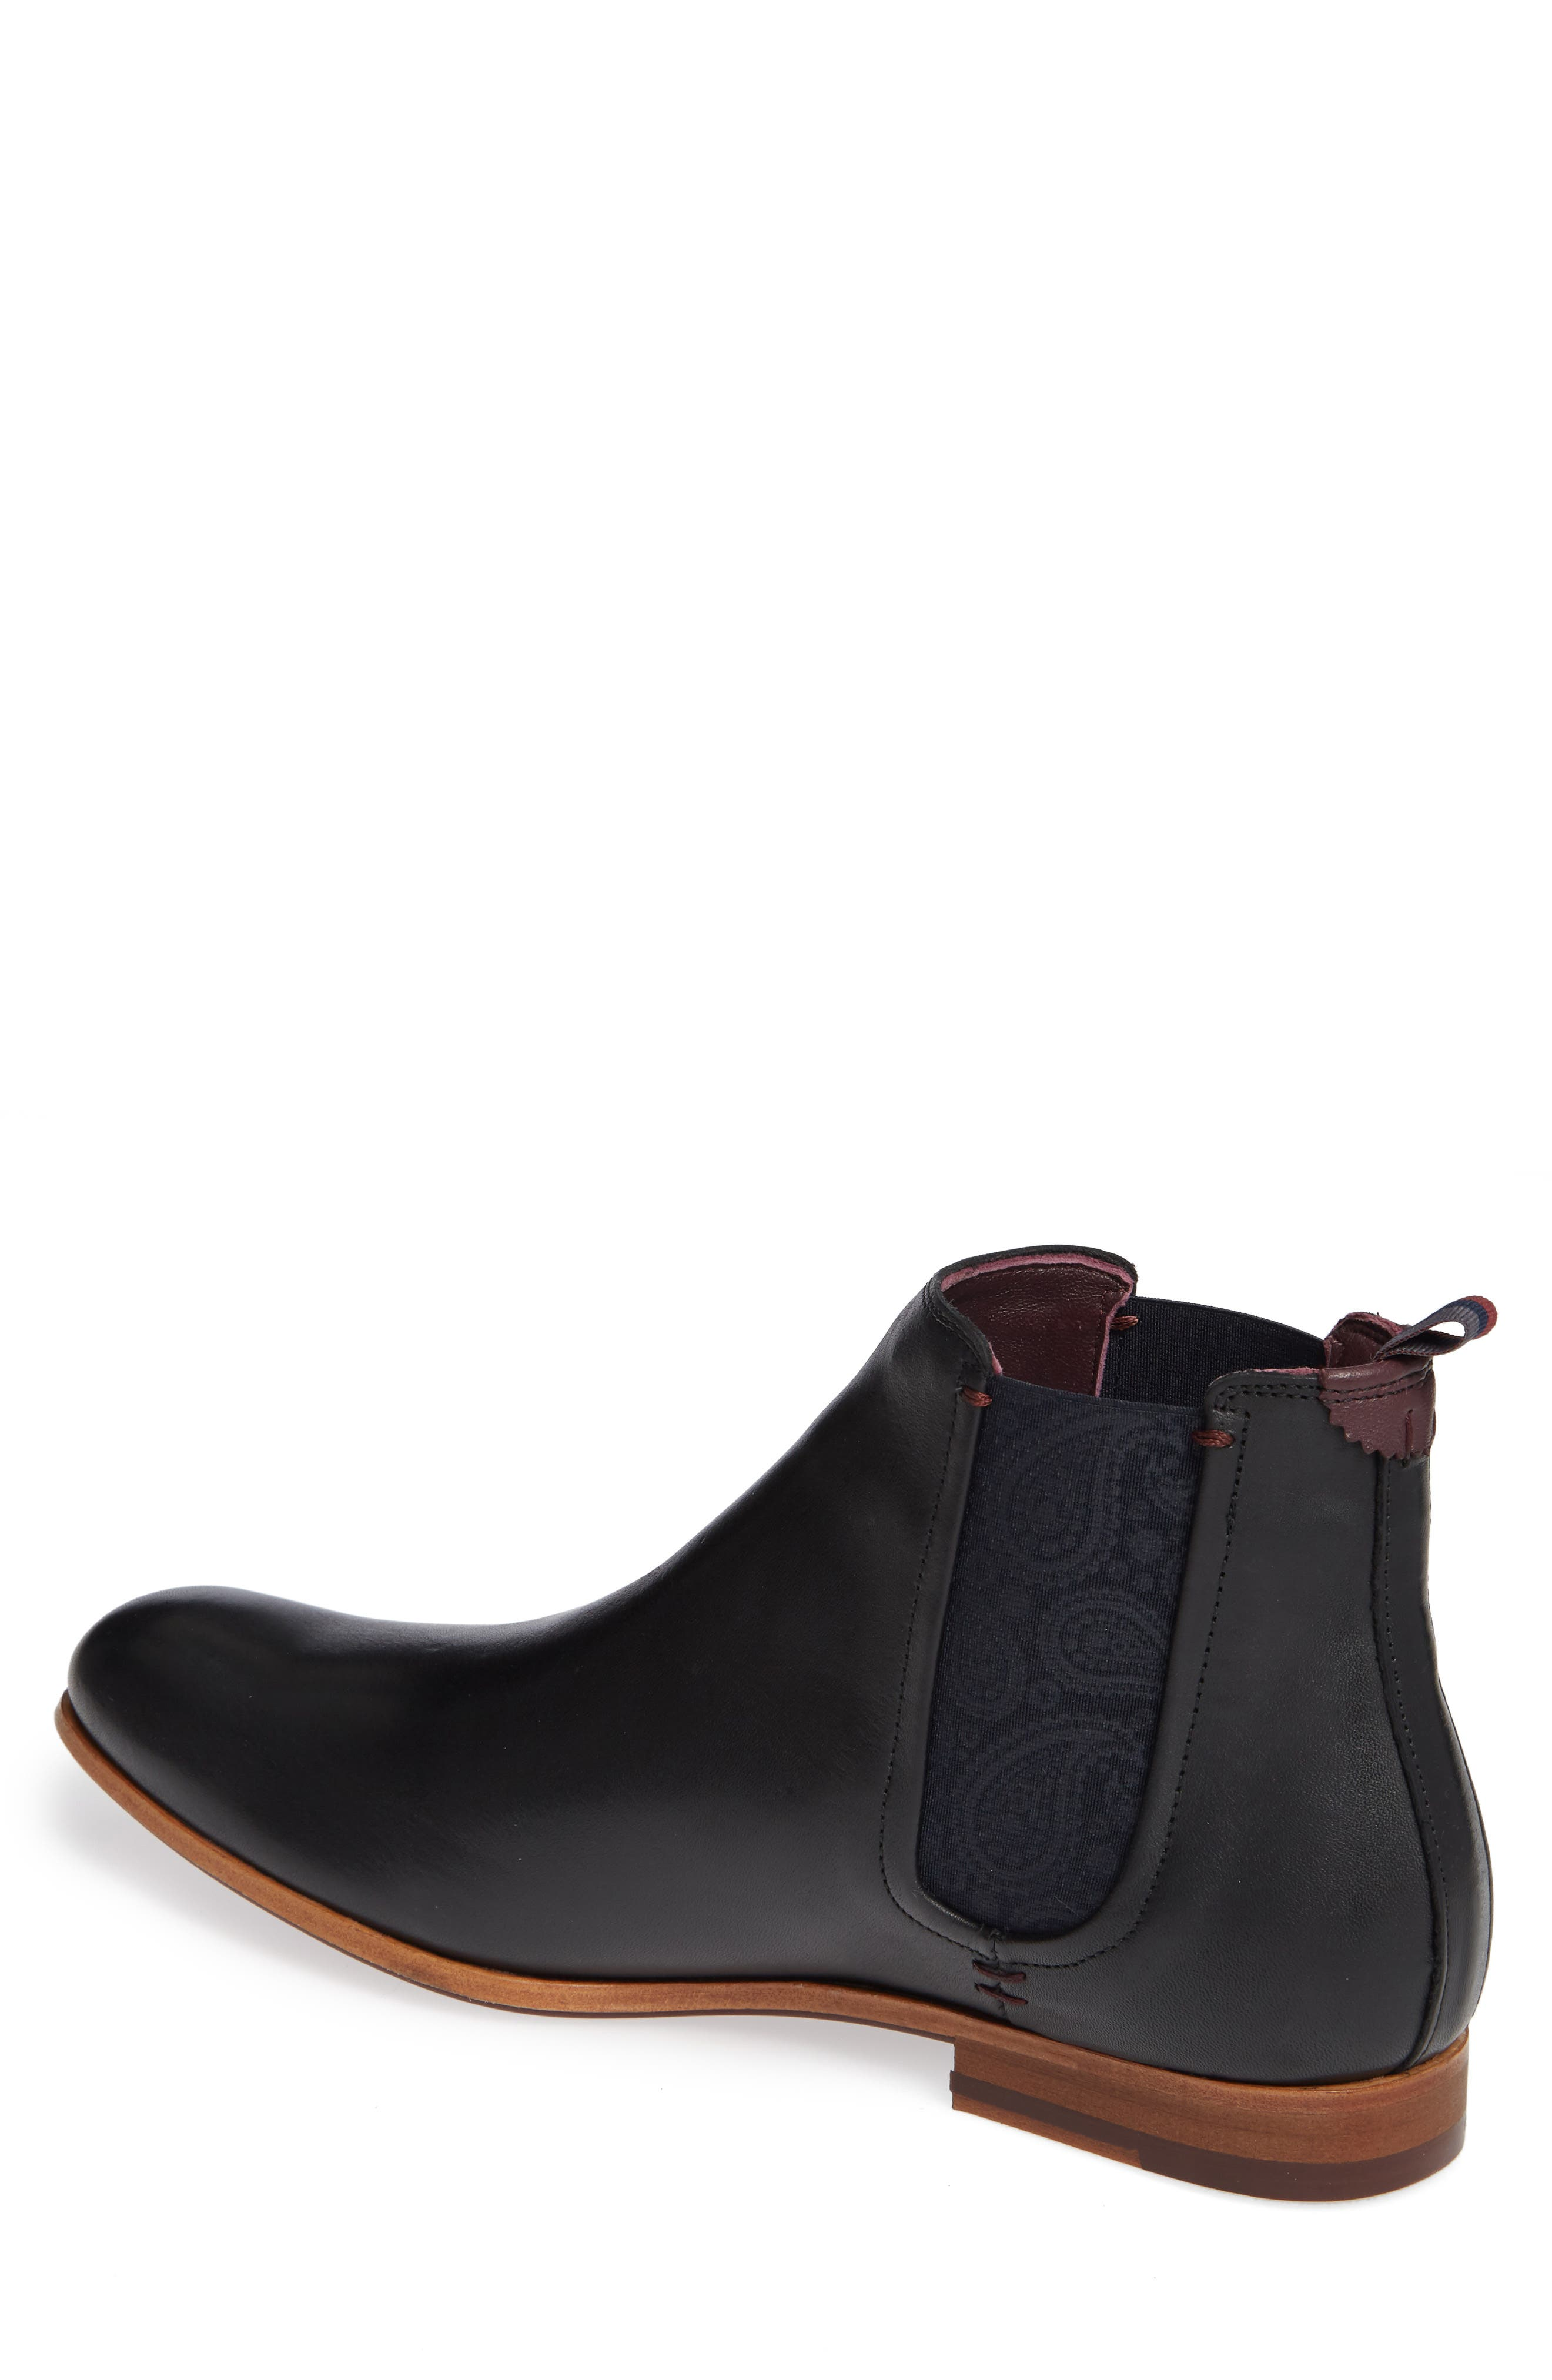 Whron Chelsea Boot,                             Alternate thumbnail 2, color,                             BLACK